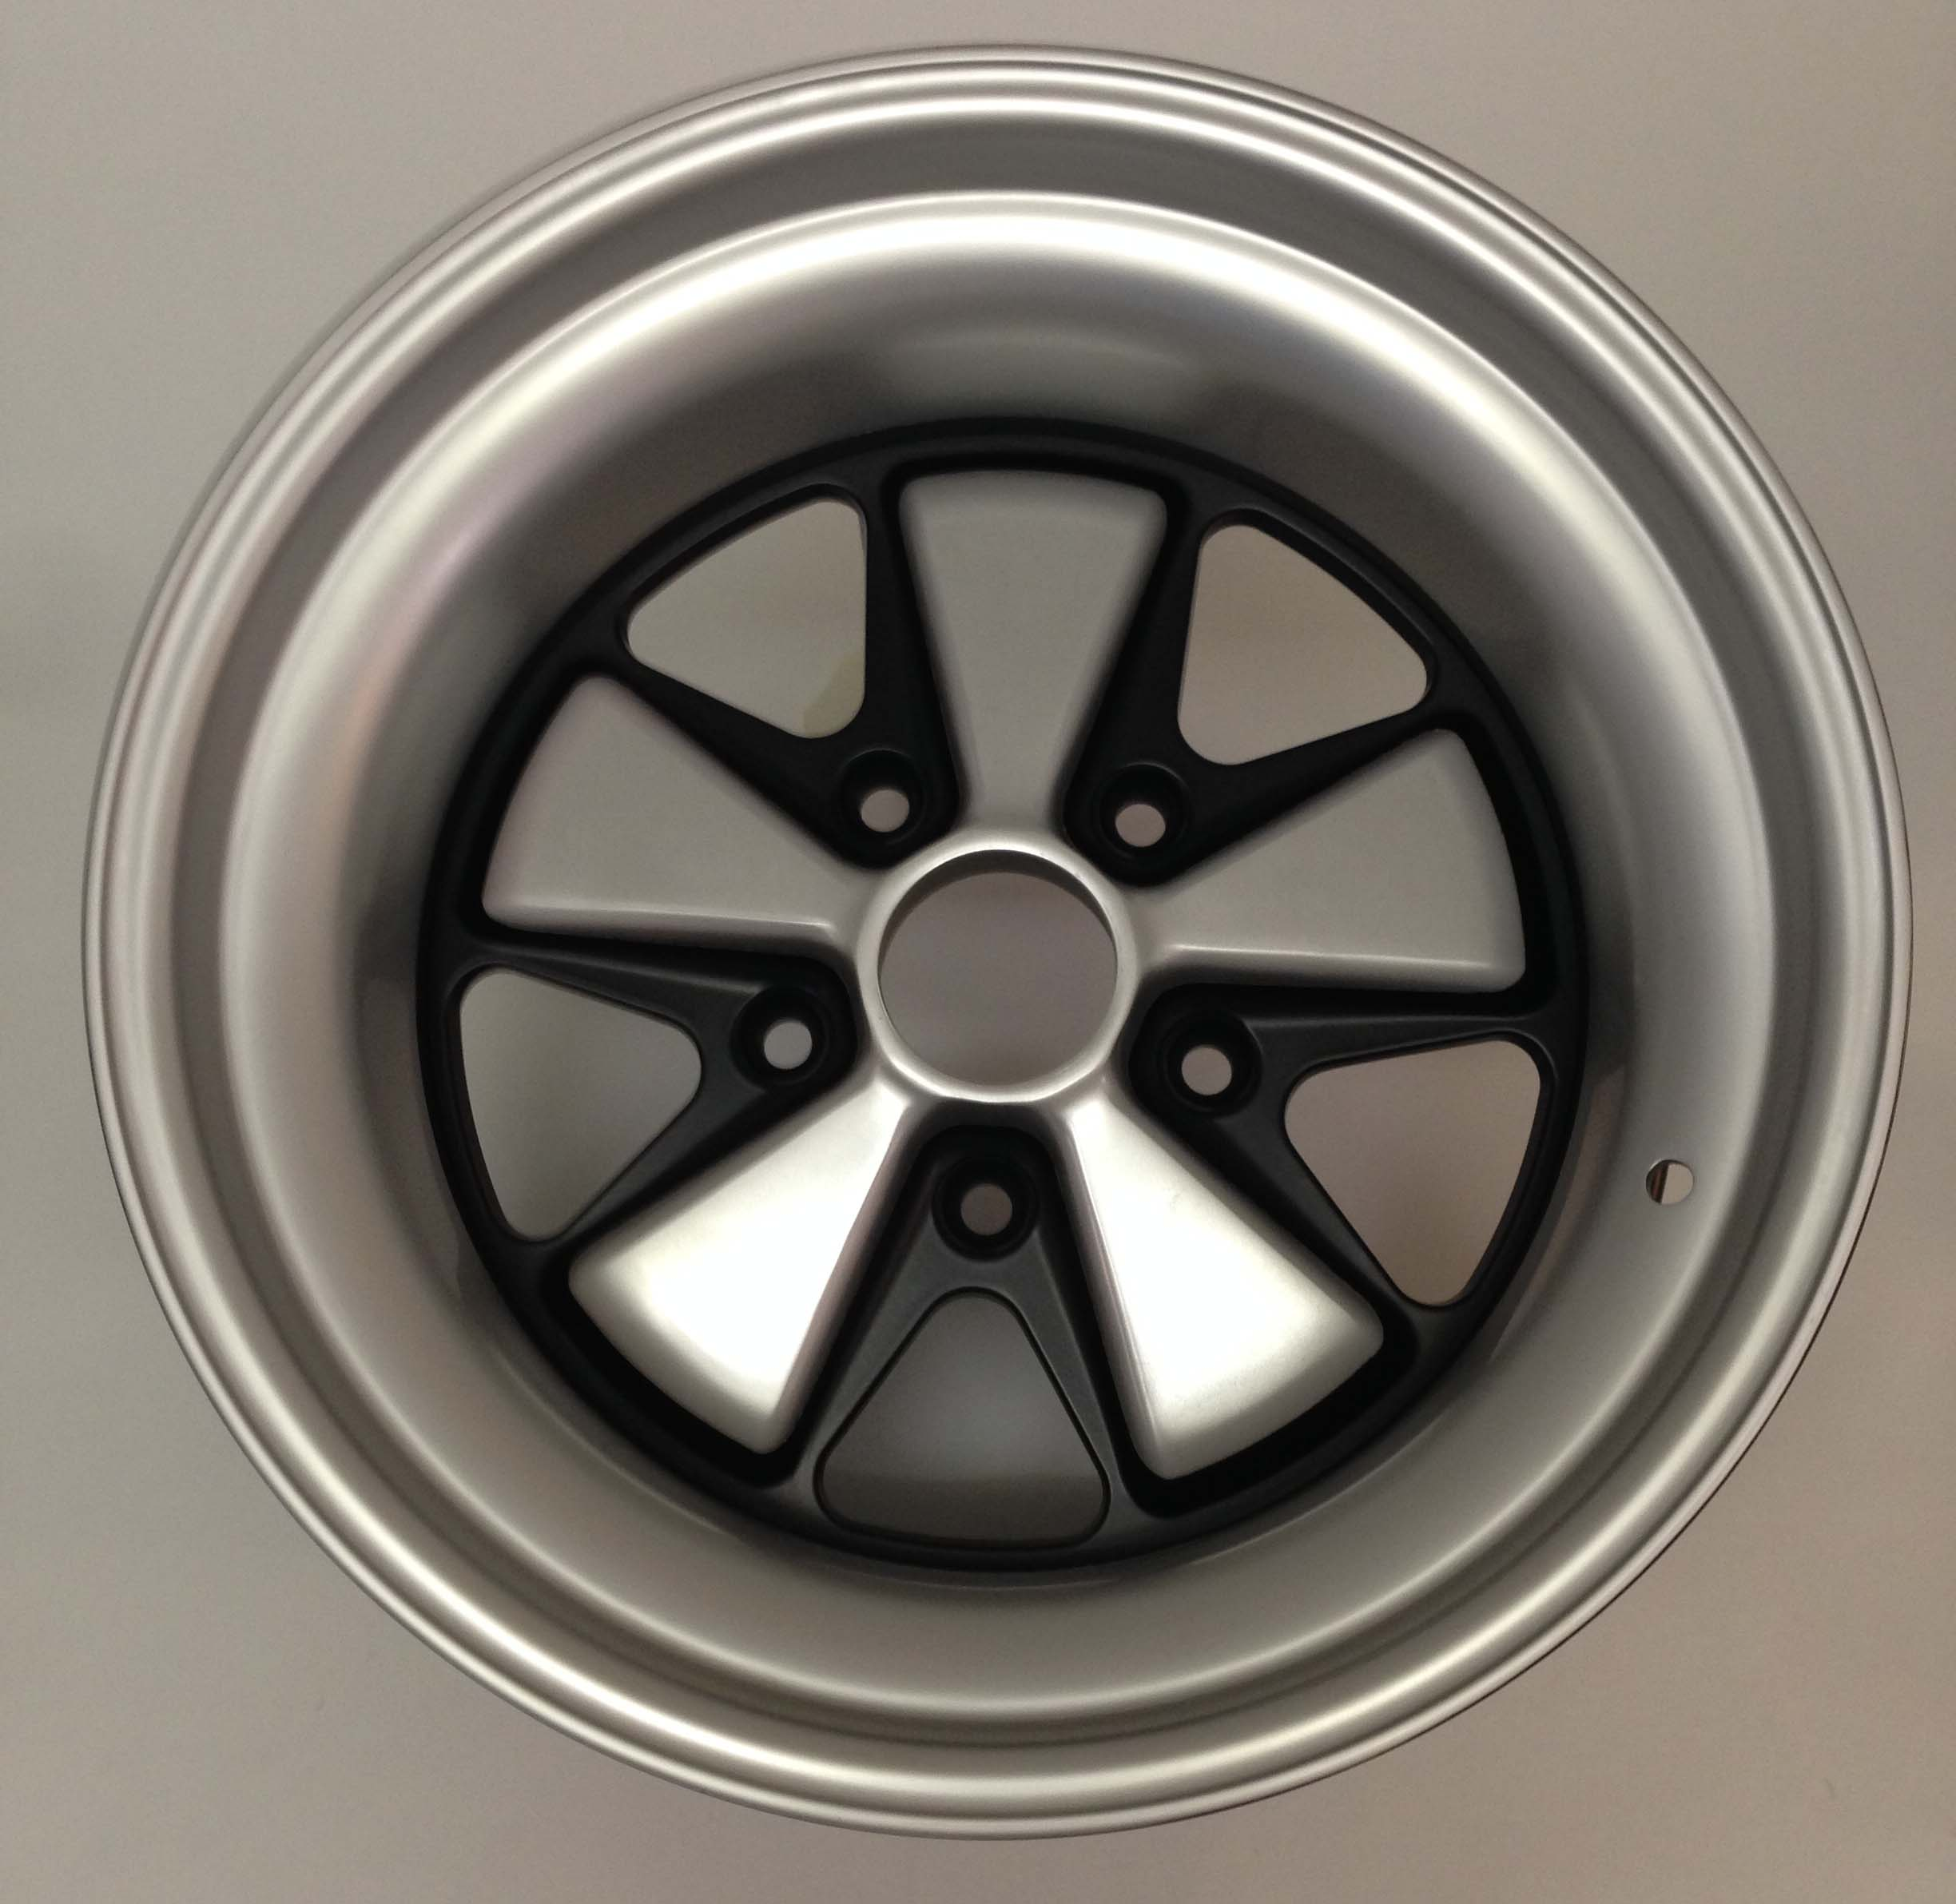 Forged Rsr Style 15 Quot Wheels Custom Offset Twinspark Racing